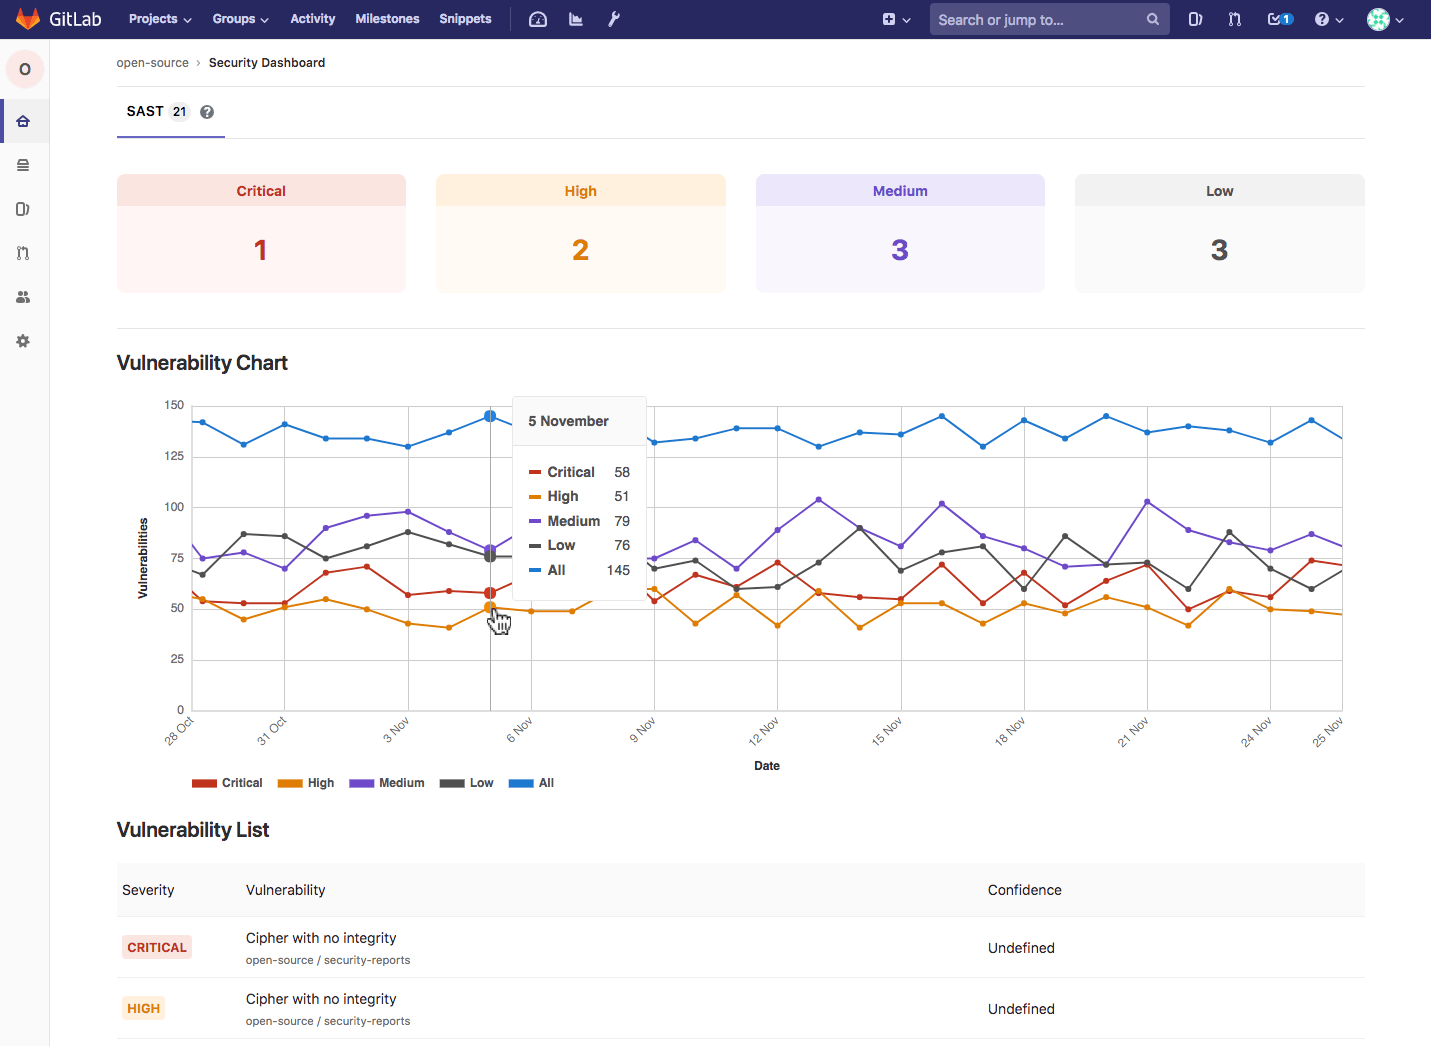 Vulnerability Chart for Group Security Dashboards